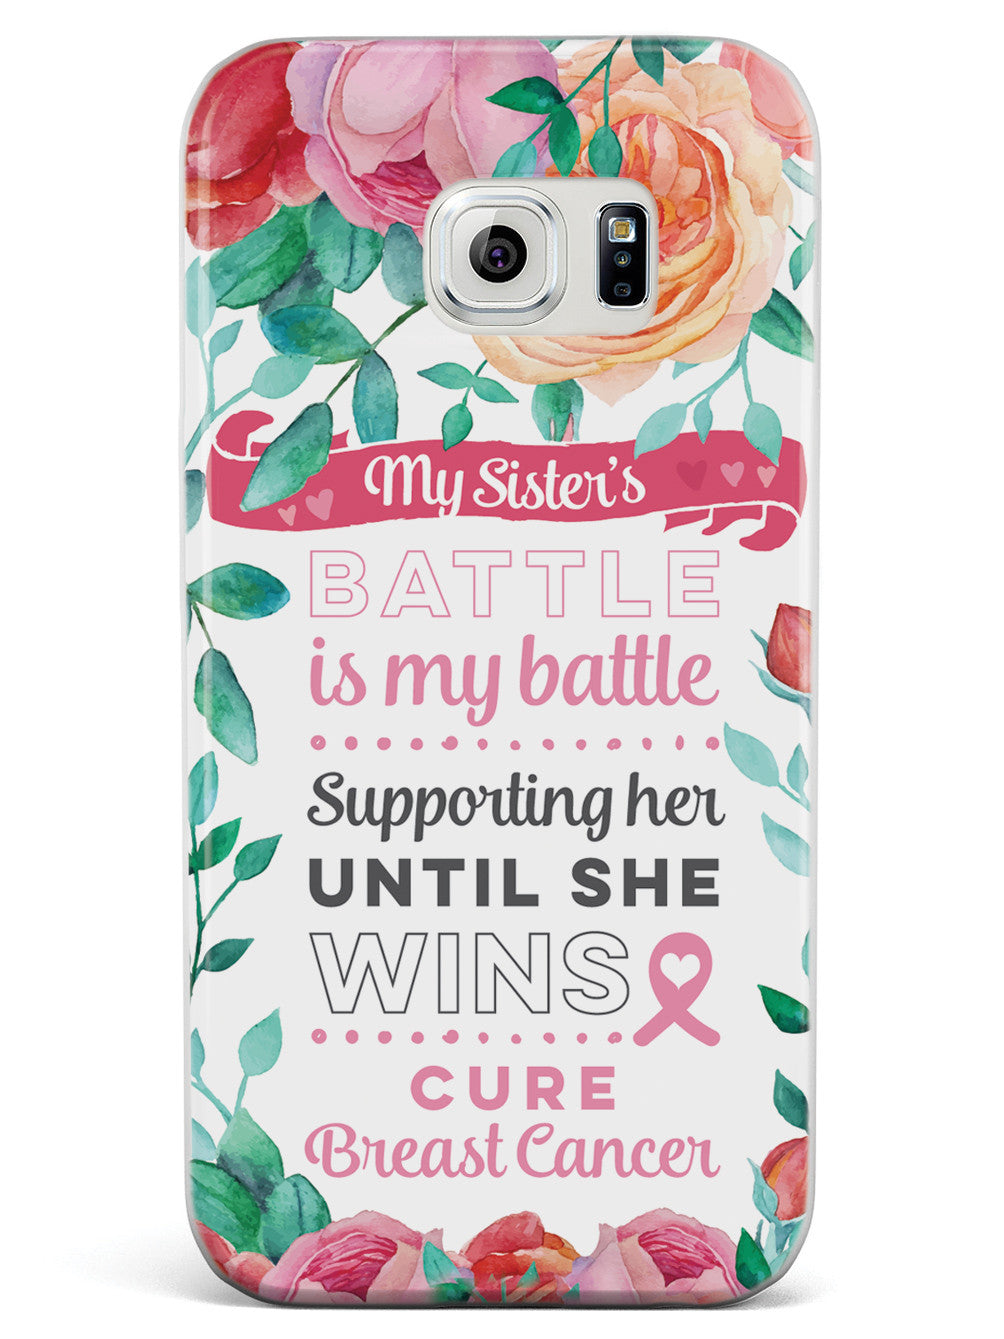 My Sister's Battle - Breast Cancer Awareness Case